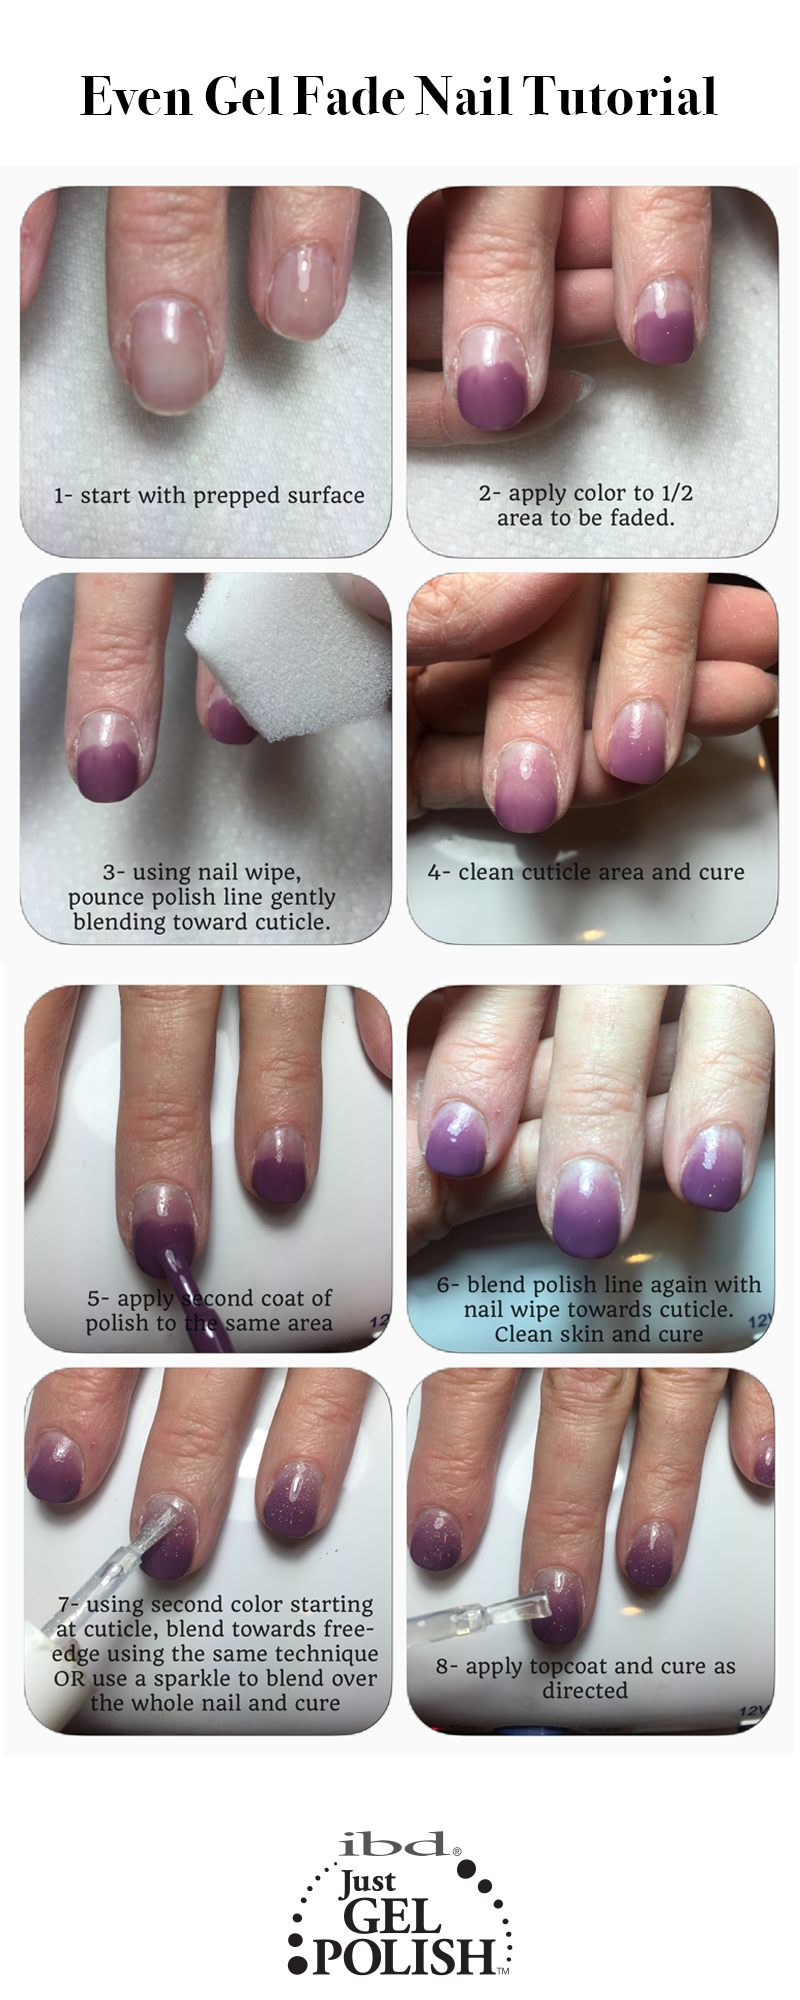 Even Gel Fade Ombre Nail Tutorial Using Sweet Sanctuary And Fireworks Justgel Polish Ombre Gel Nails Ombre Nails Tutorial Ombre Nails